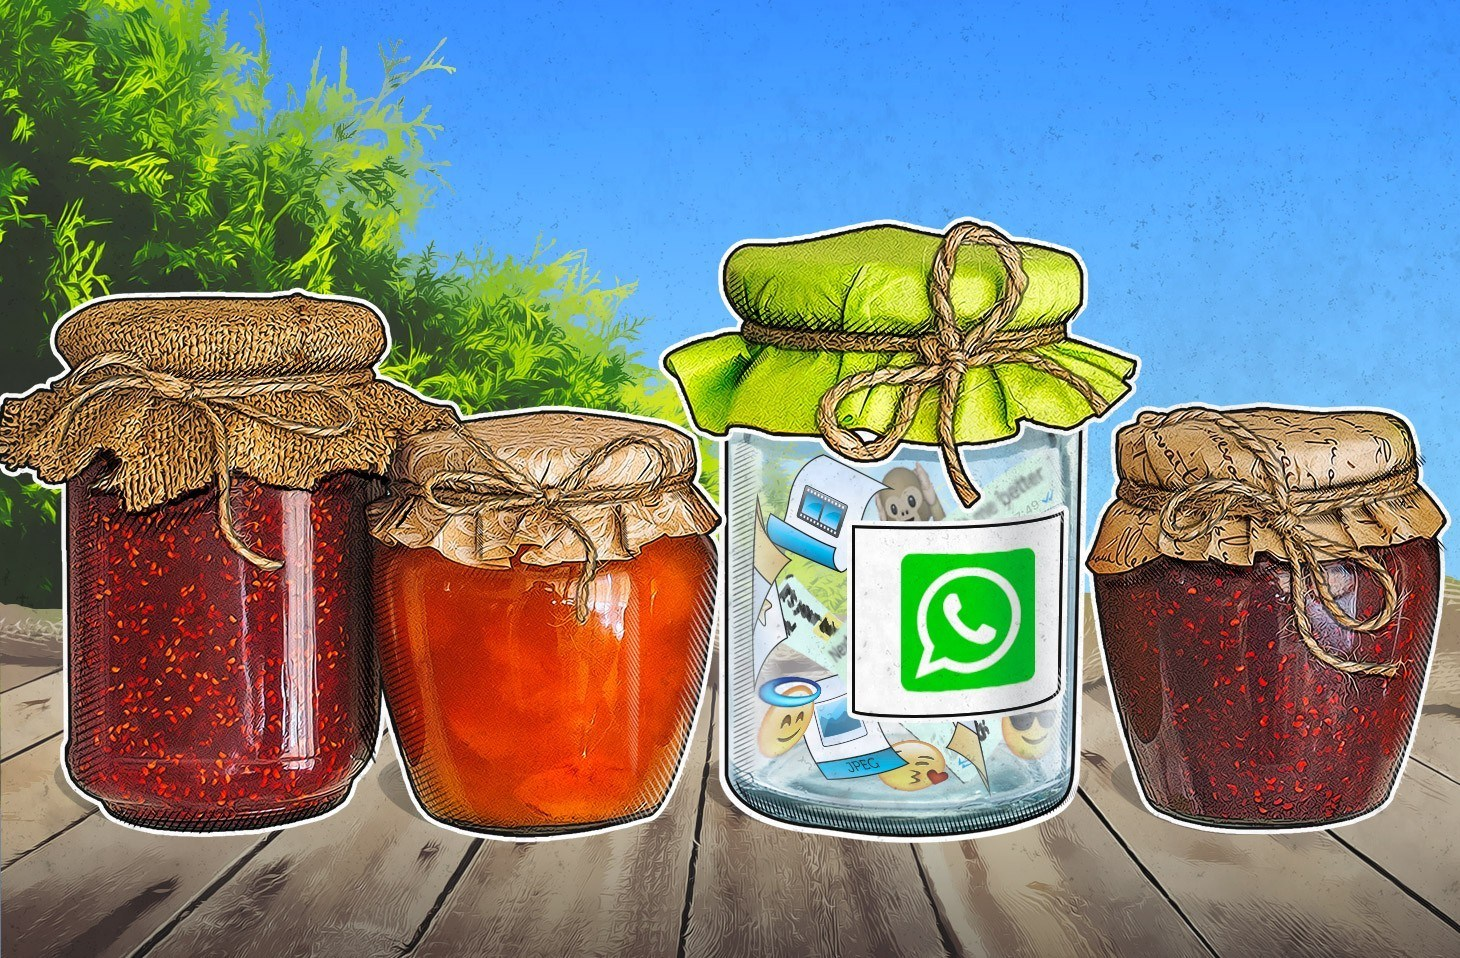 WhatsApp for Android and chat backups | Kaspersky official blog